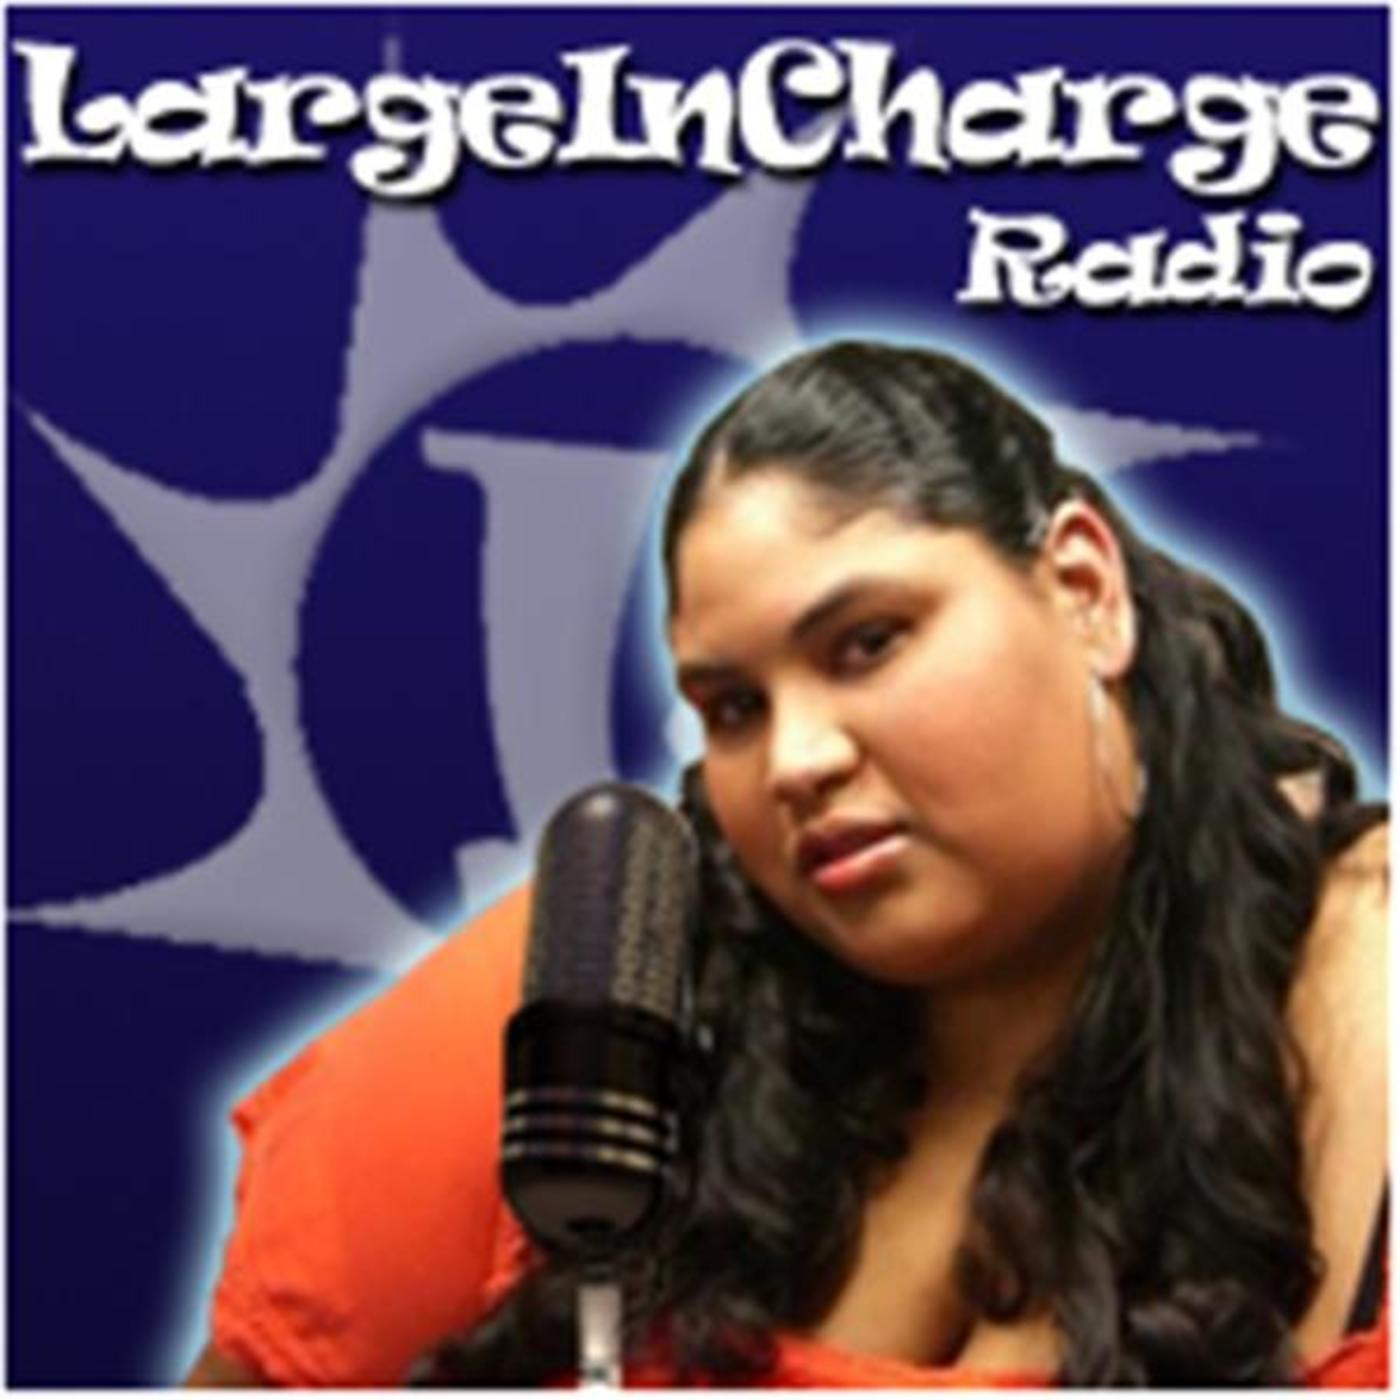 LargeInCharge Radio